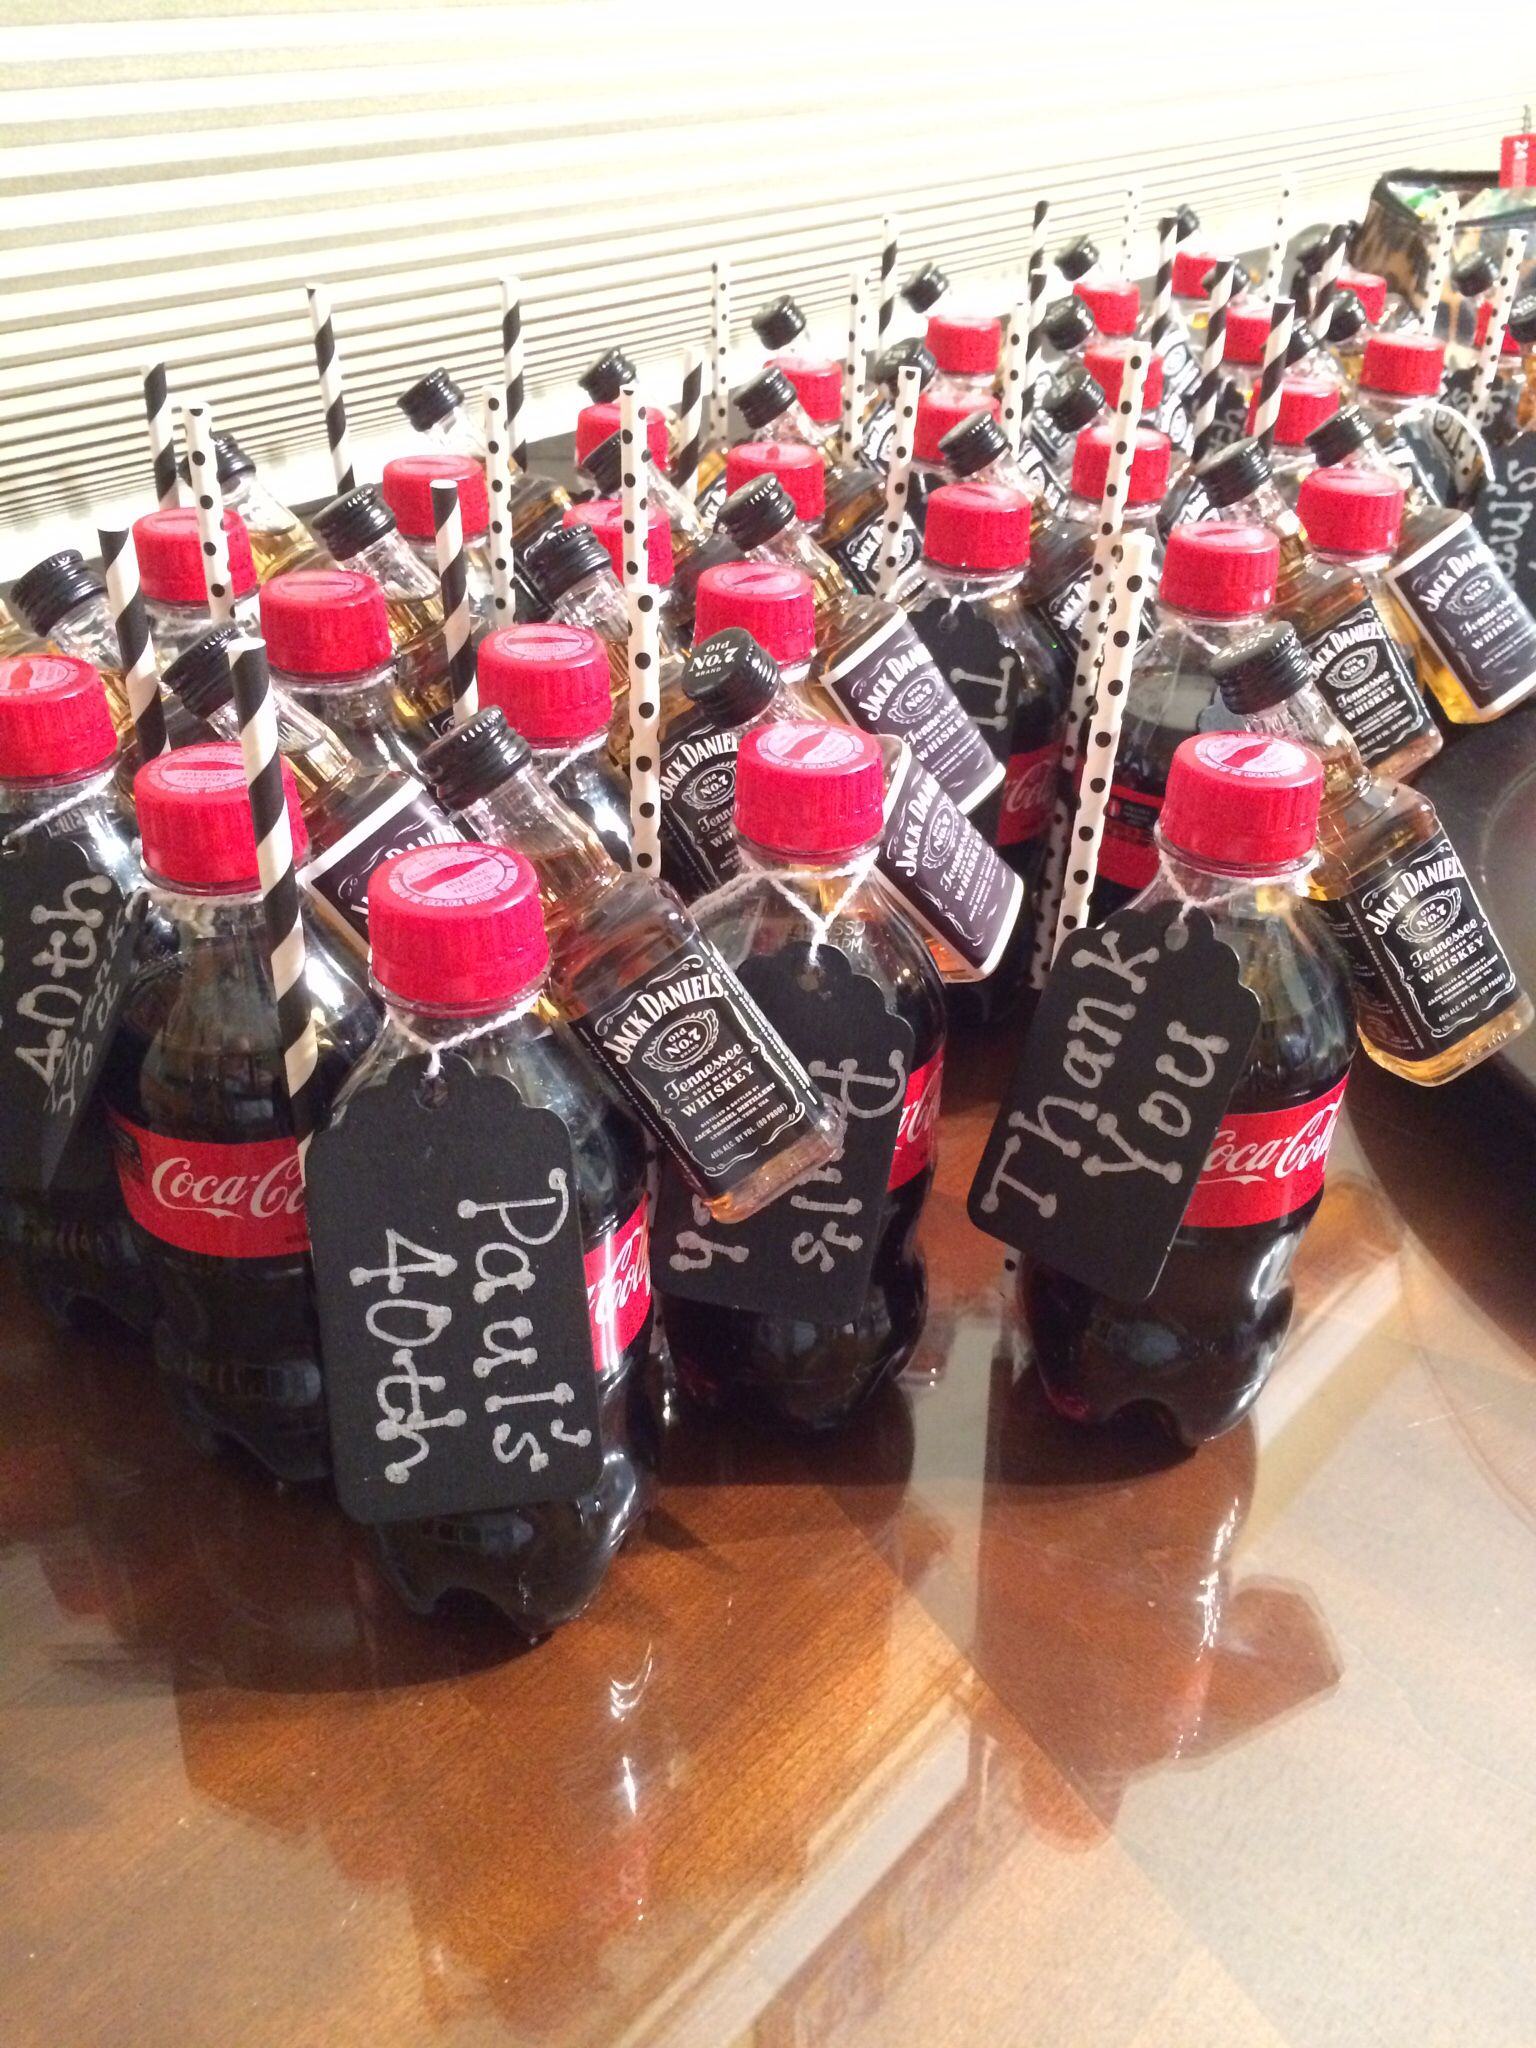 Jack daniels party favors and coke convenient straw th birthday also rh ar pinterest